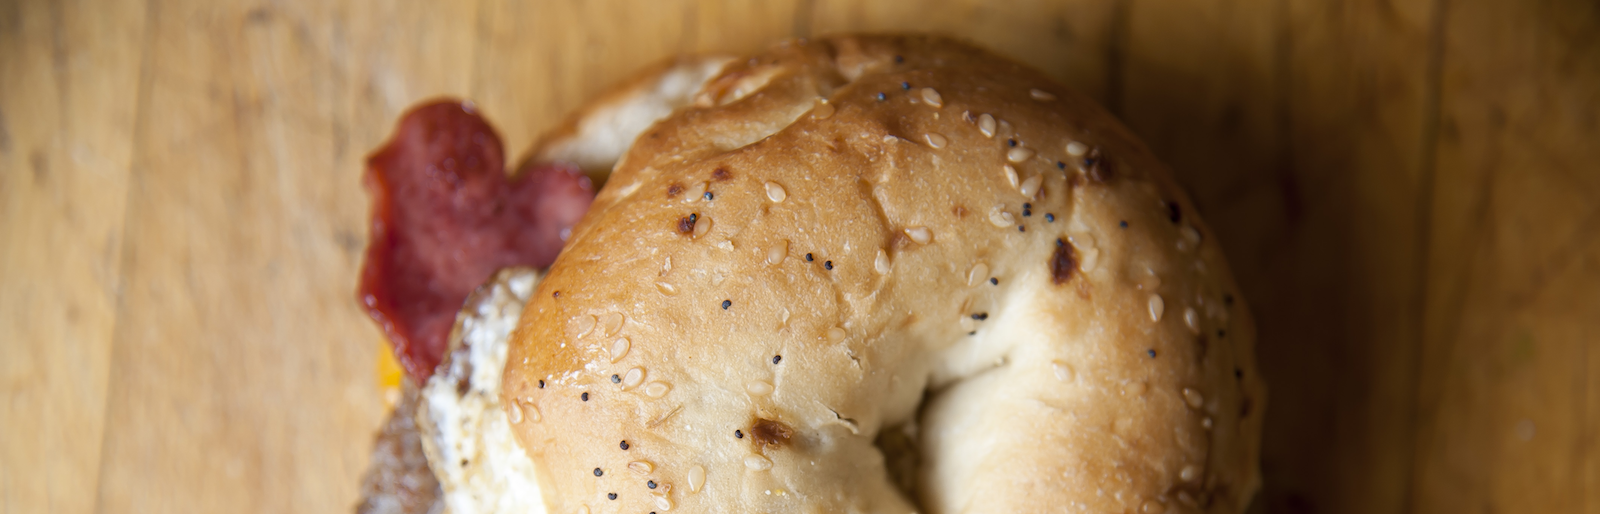 Davey's Delicious Bagels & Deli serves steamed bagel sandwiches and homemade soups.